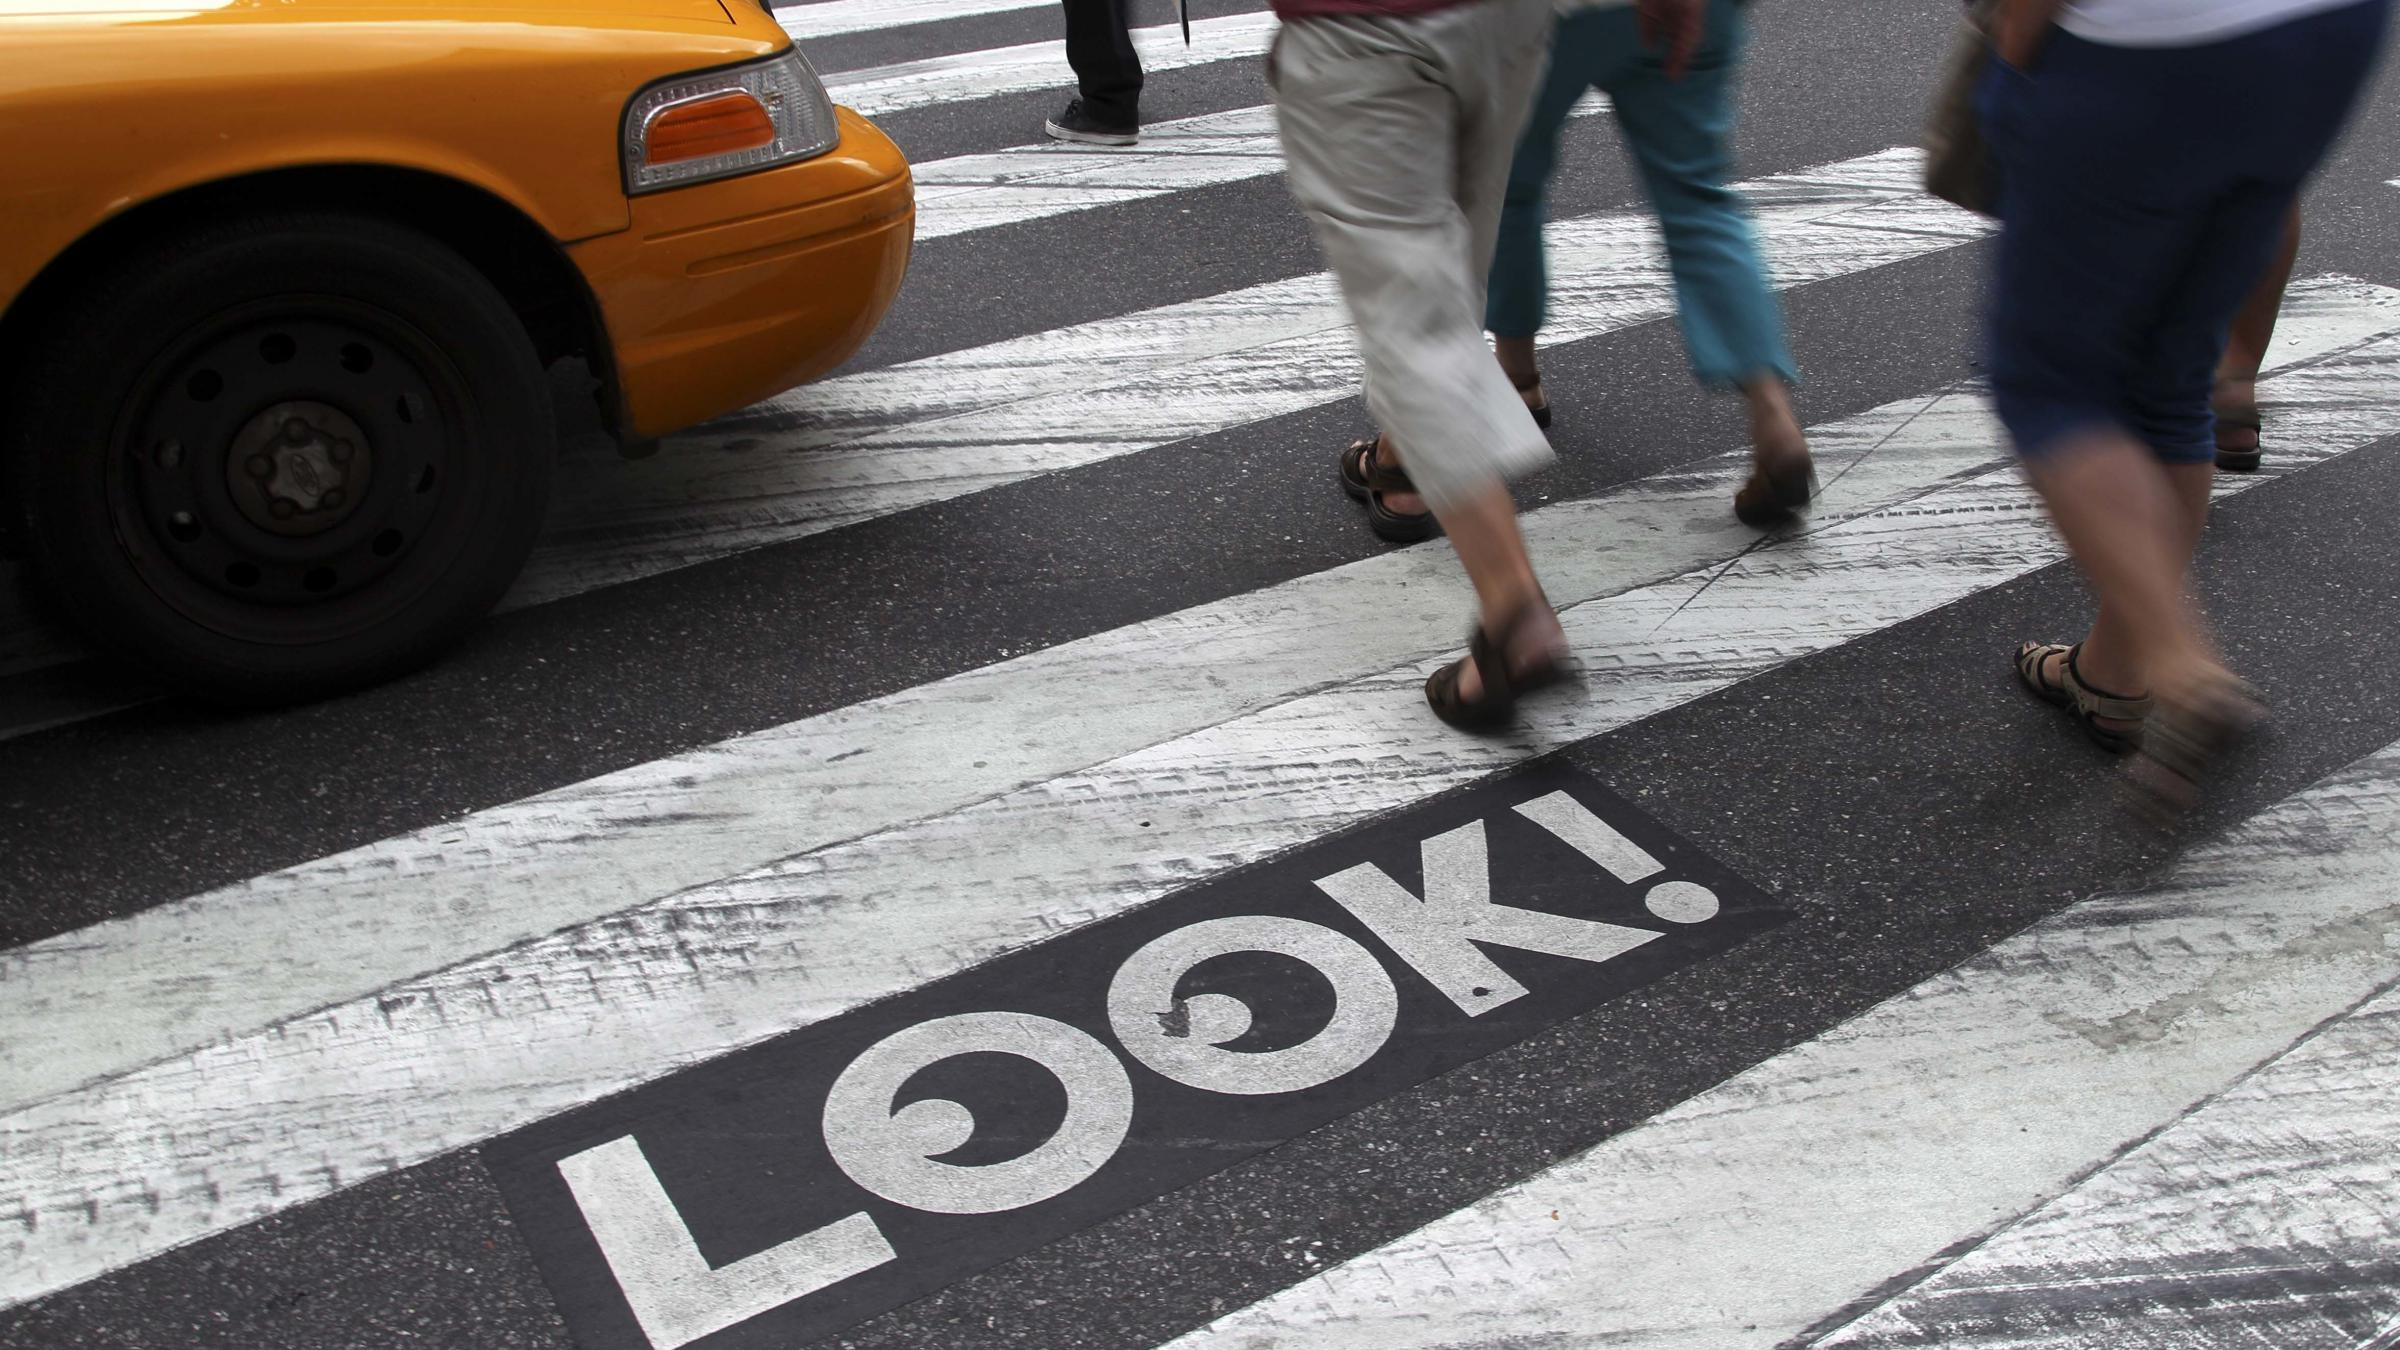 It's Now Illegal To Text While Crossing The Street In Honolulu